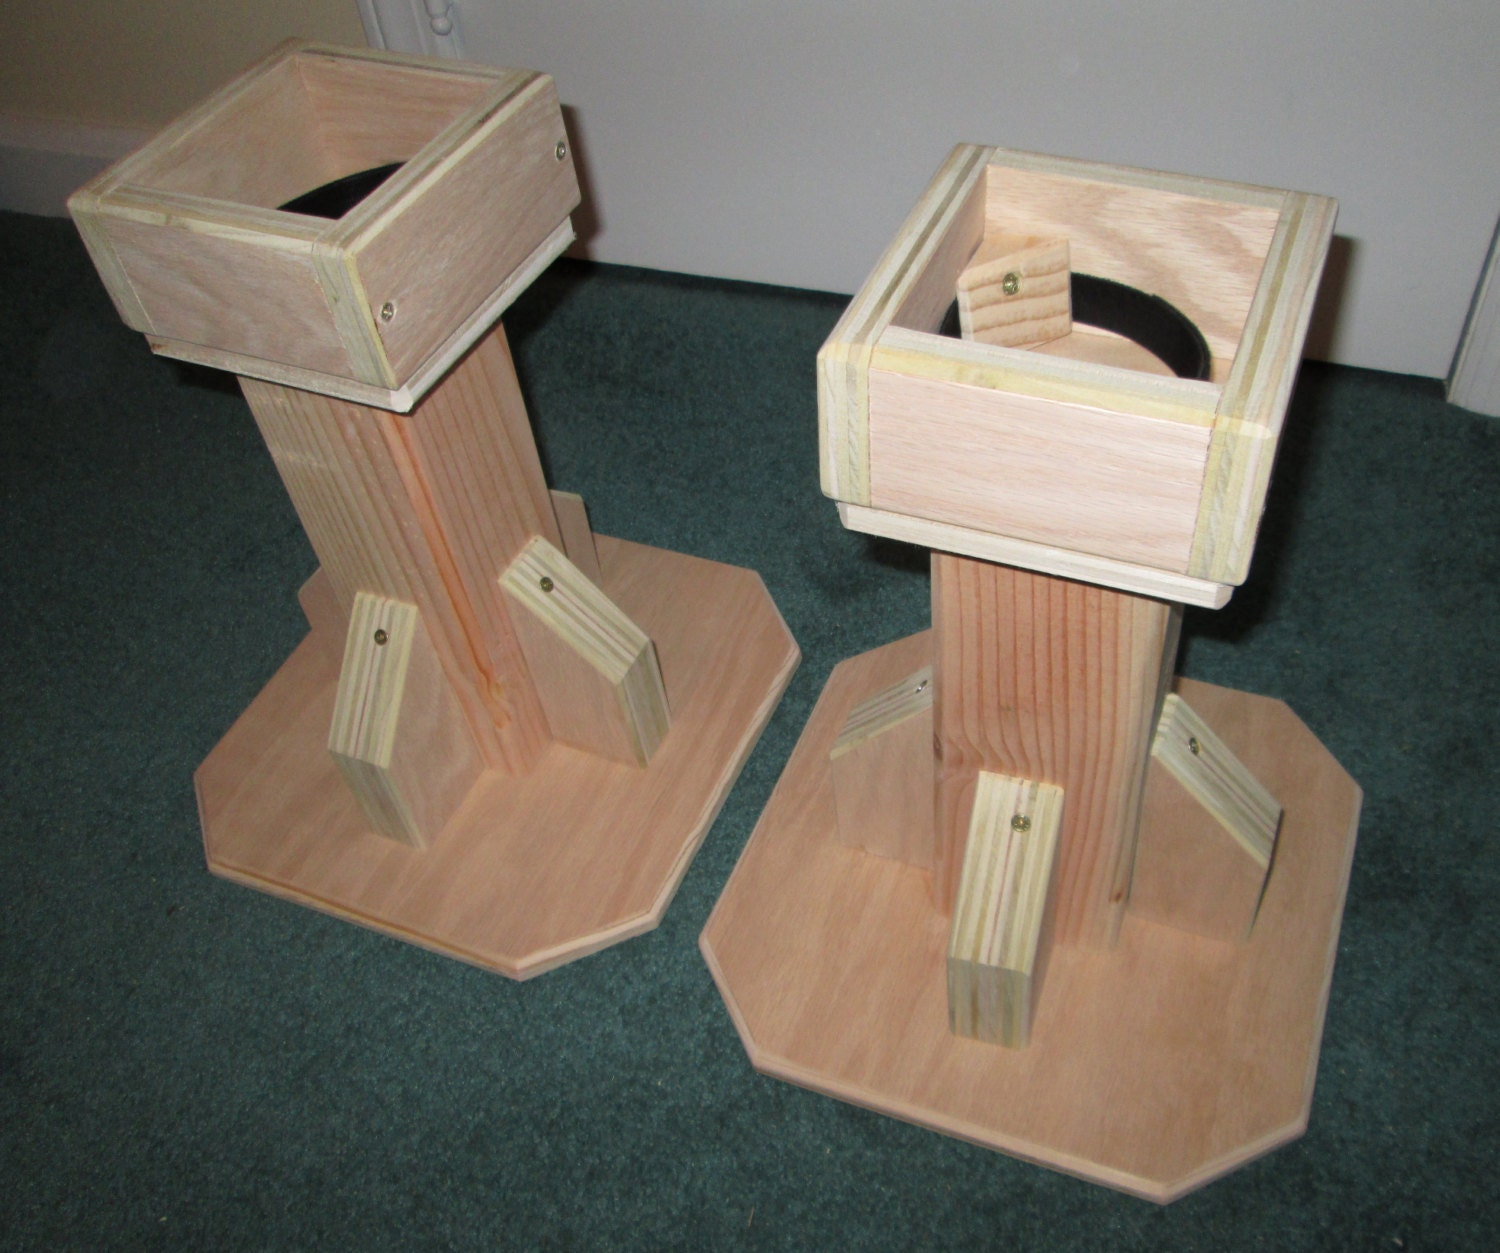 12 inch bed risers all wood construction unfinished. Black Bedroom Furniture Sets. Home Design Ideas